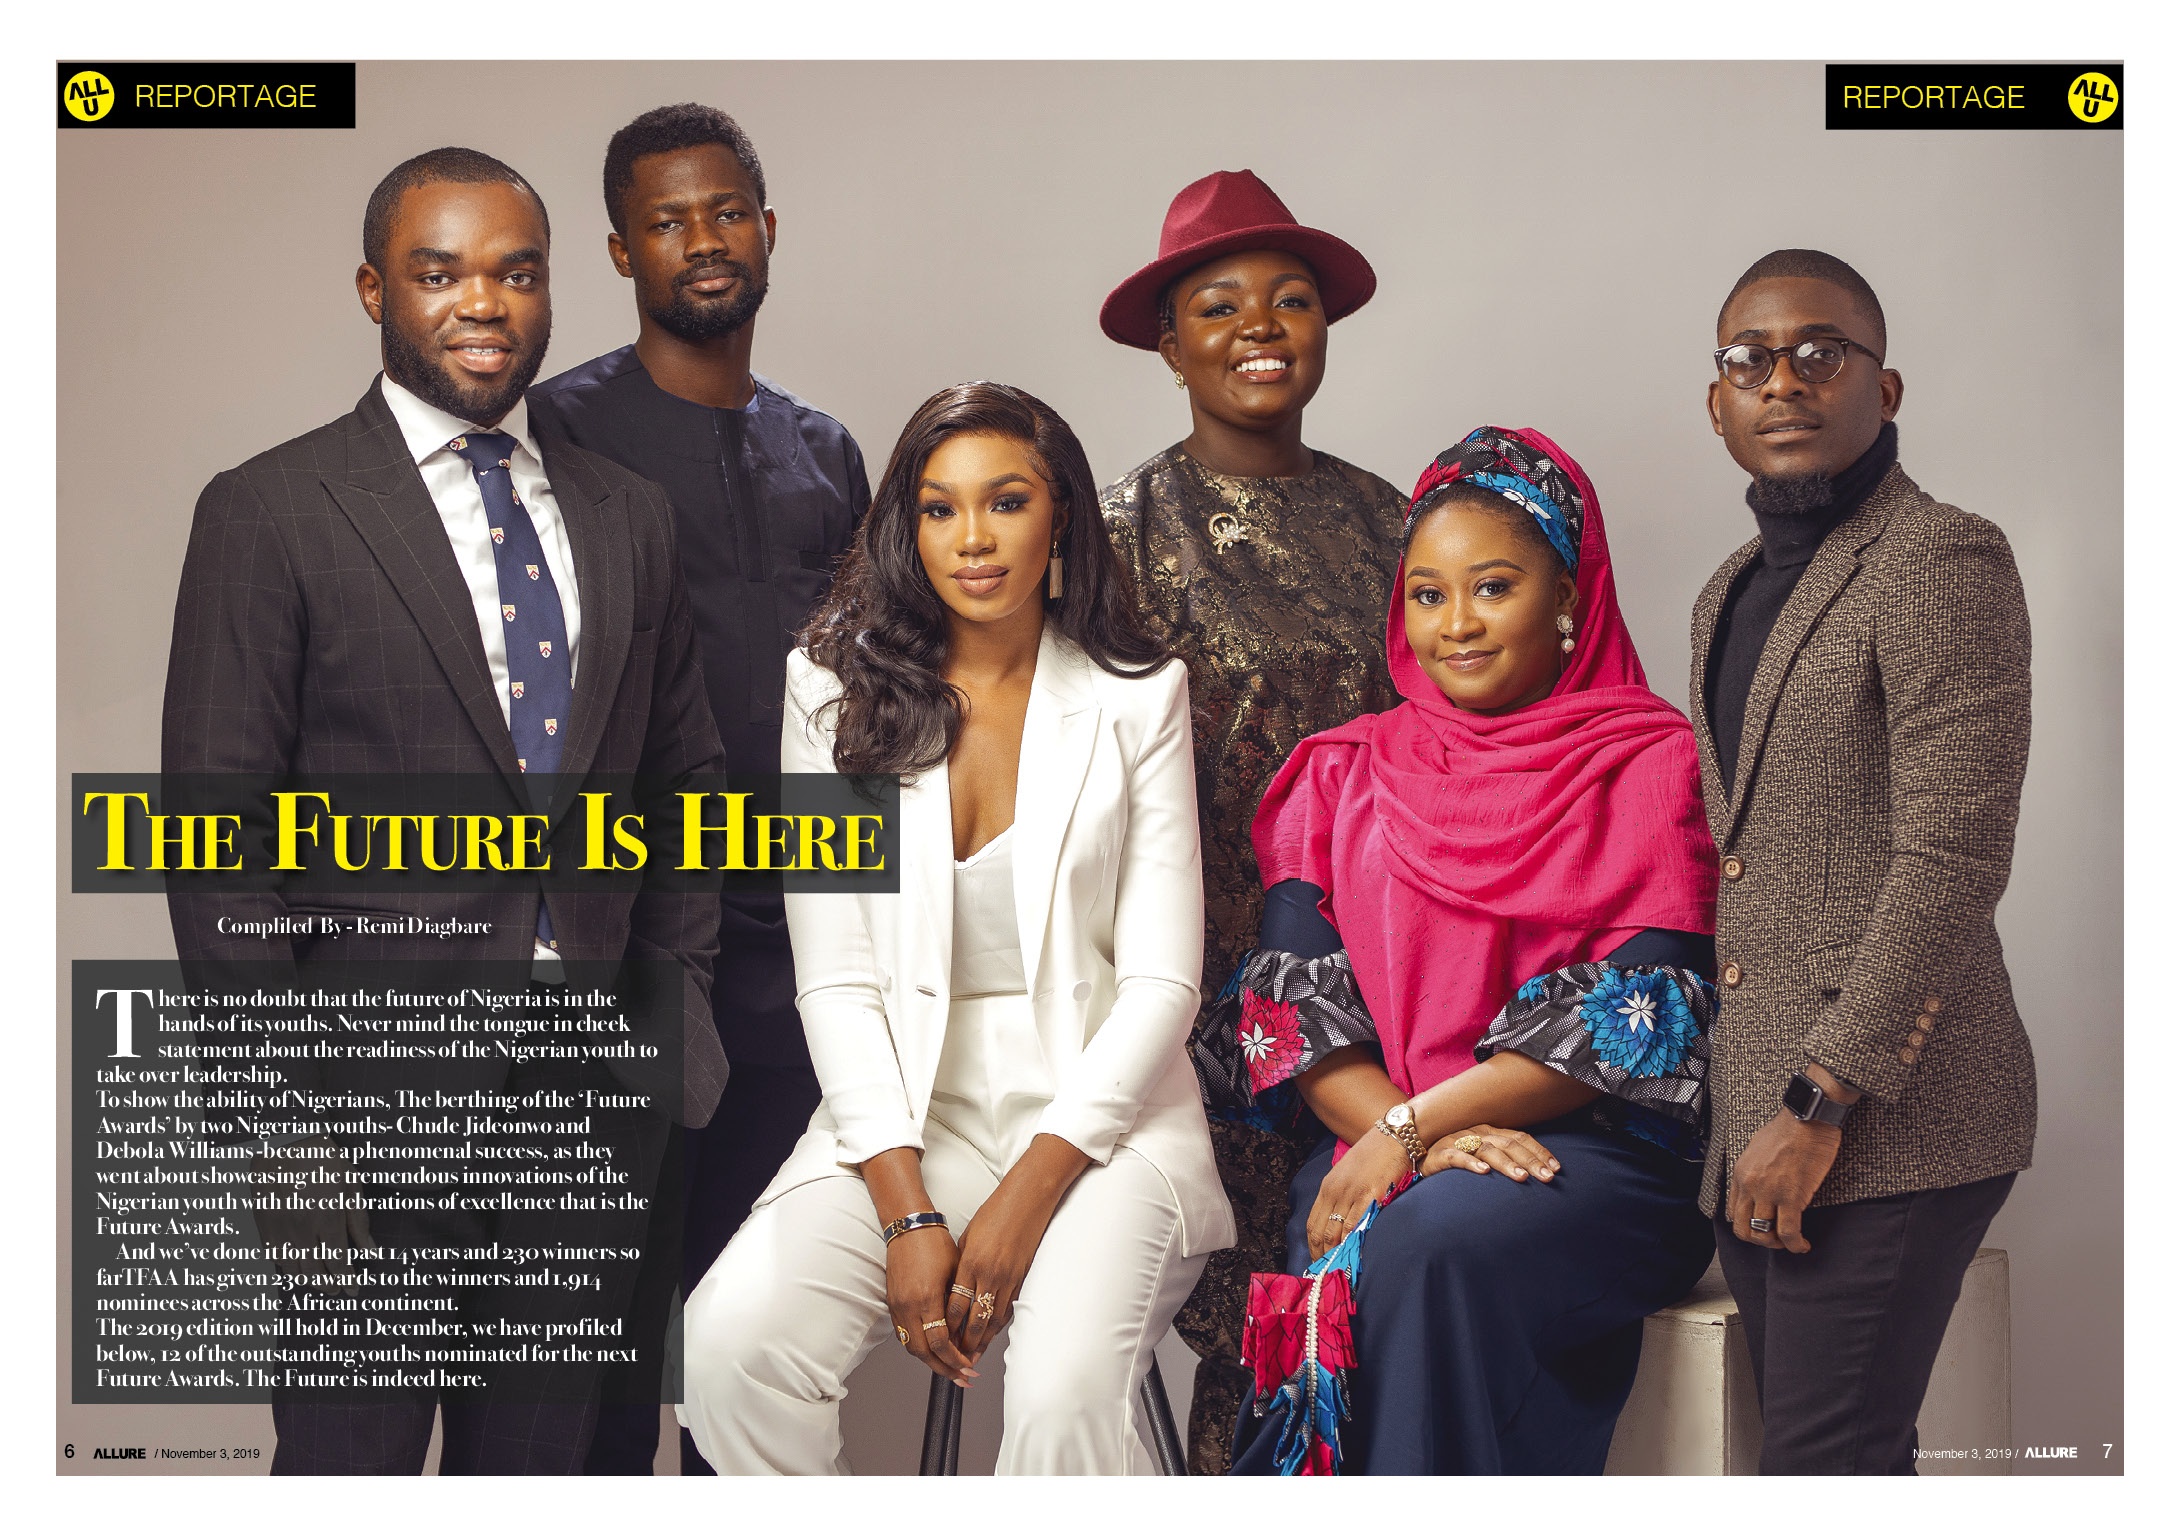 THE FUTURE AWARDS AFRICA 2019 Nominees